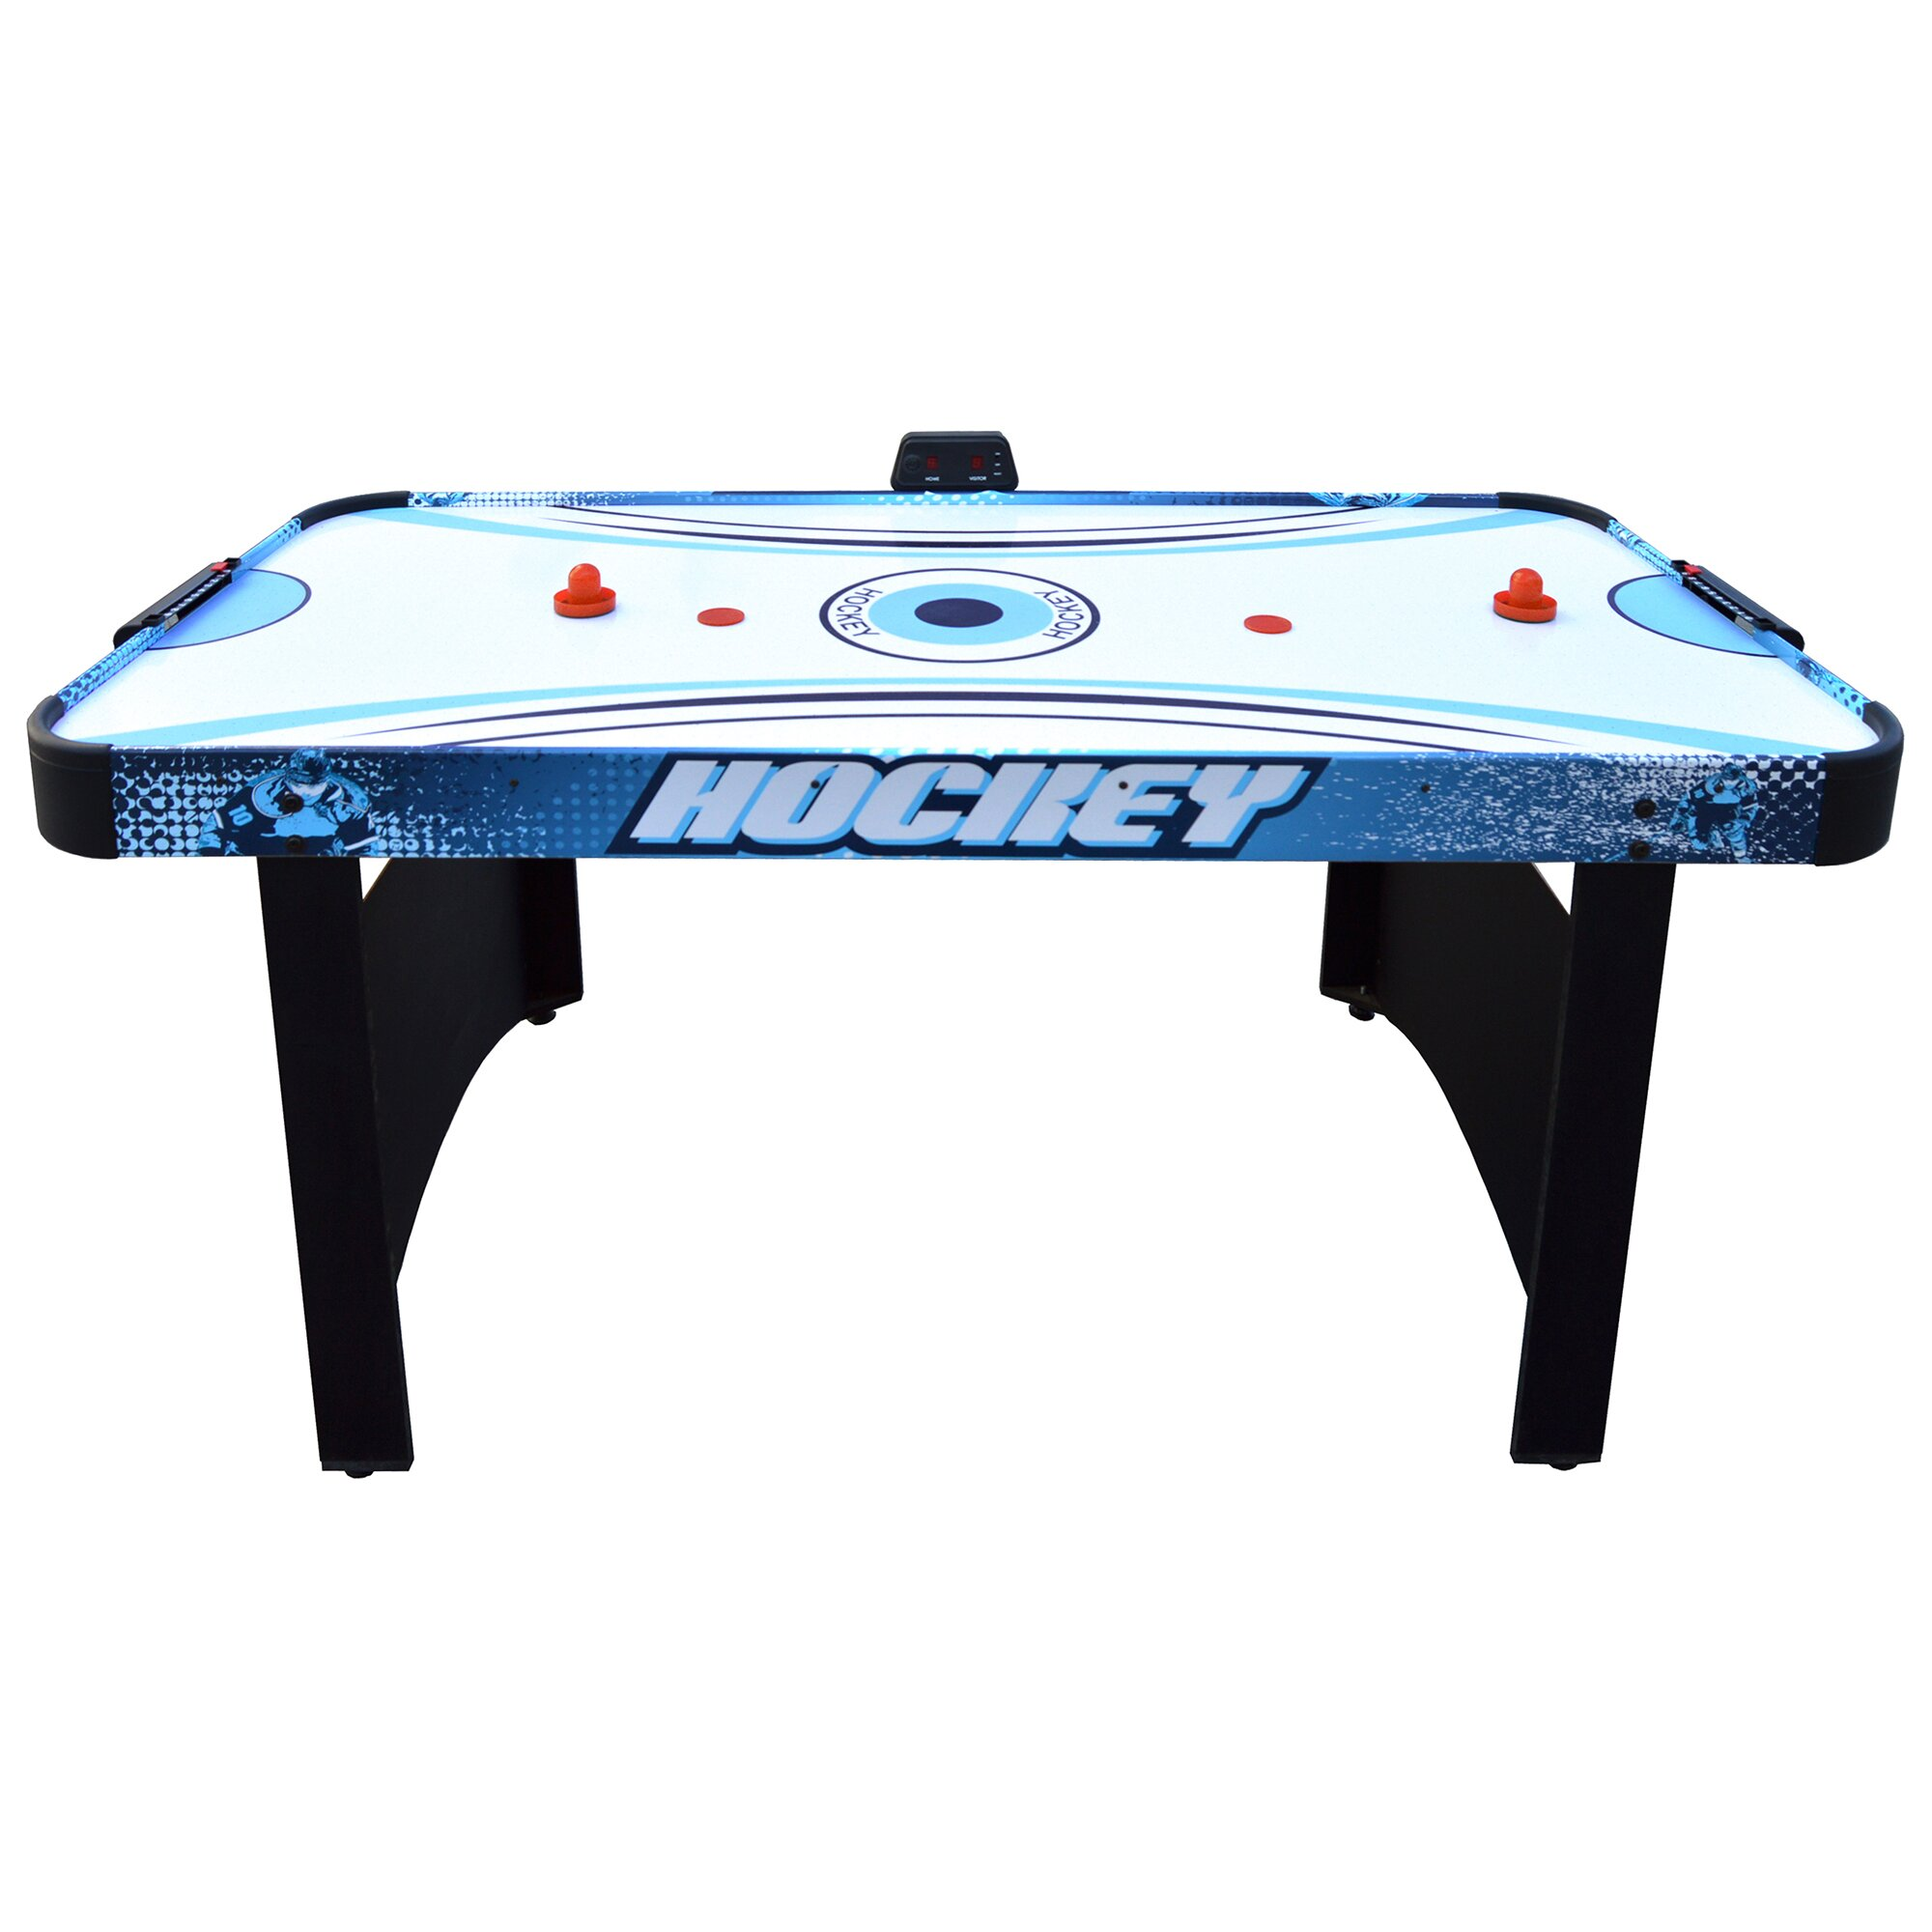 Hathaway Games Enforcer 55' Air Hockey Table & Reviews. Luxury Reception Desk. Computer Desk Cable Management. Teacher Desk Decor. Kv Drawer Slides Soft Close. Wood File Cabinets 4 Drawer. Curved Bench For Round Dining Table. White Glass Computer Desk. Home Depot End Tables